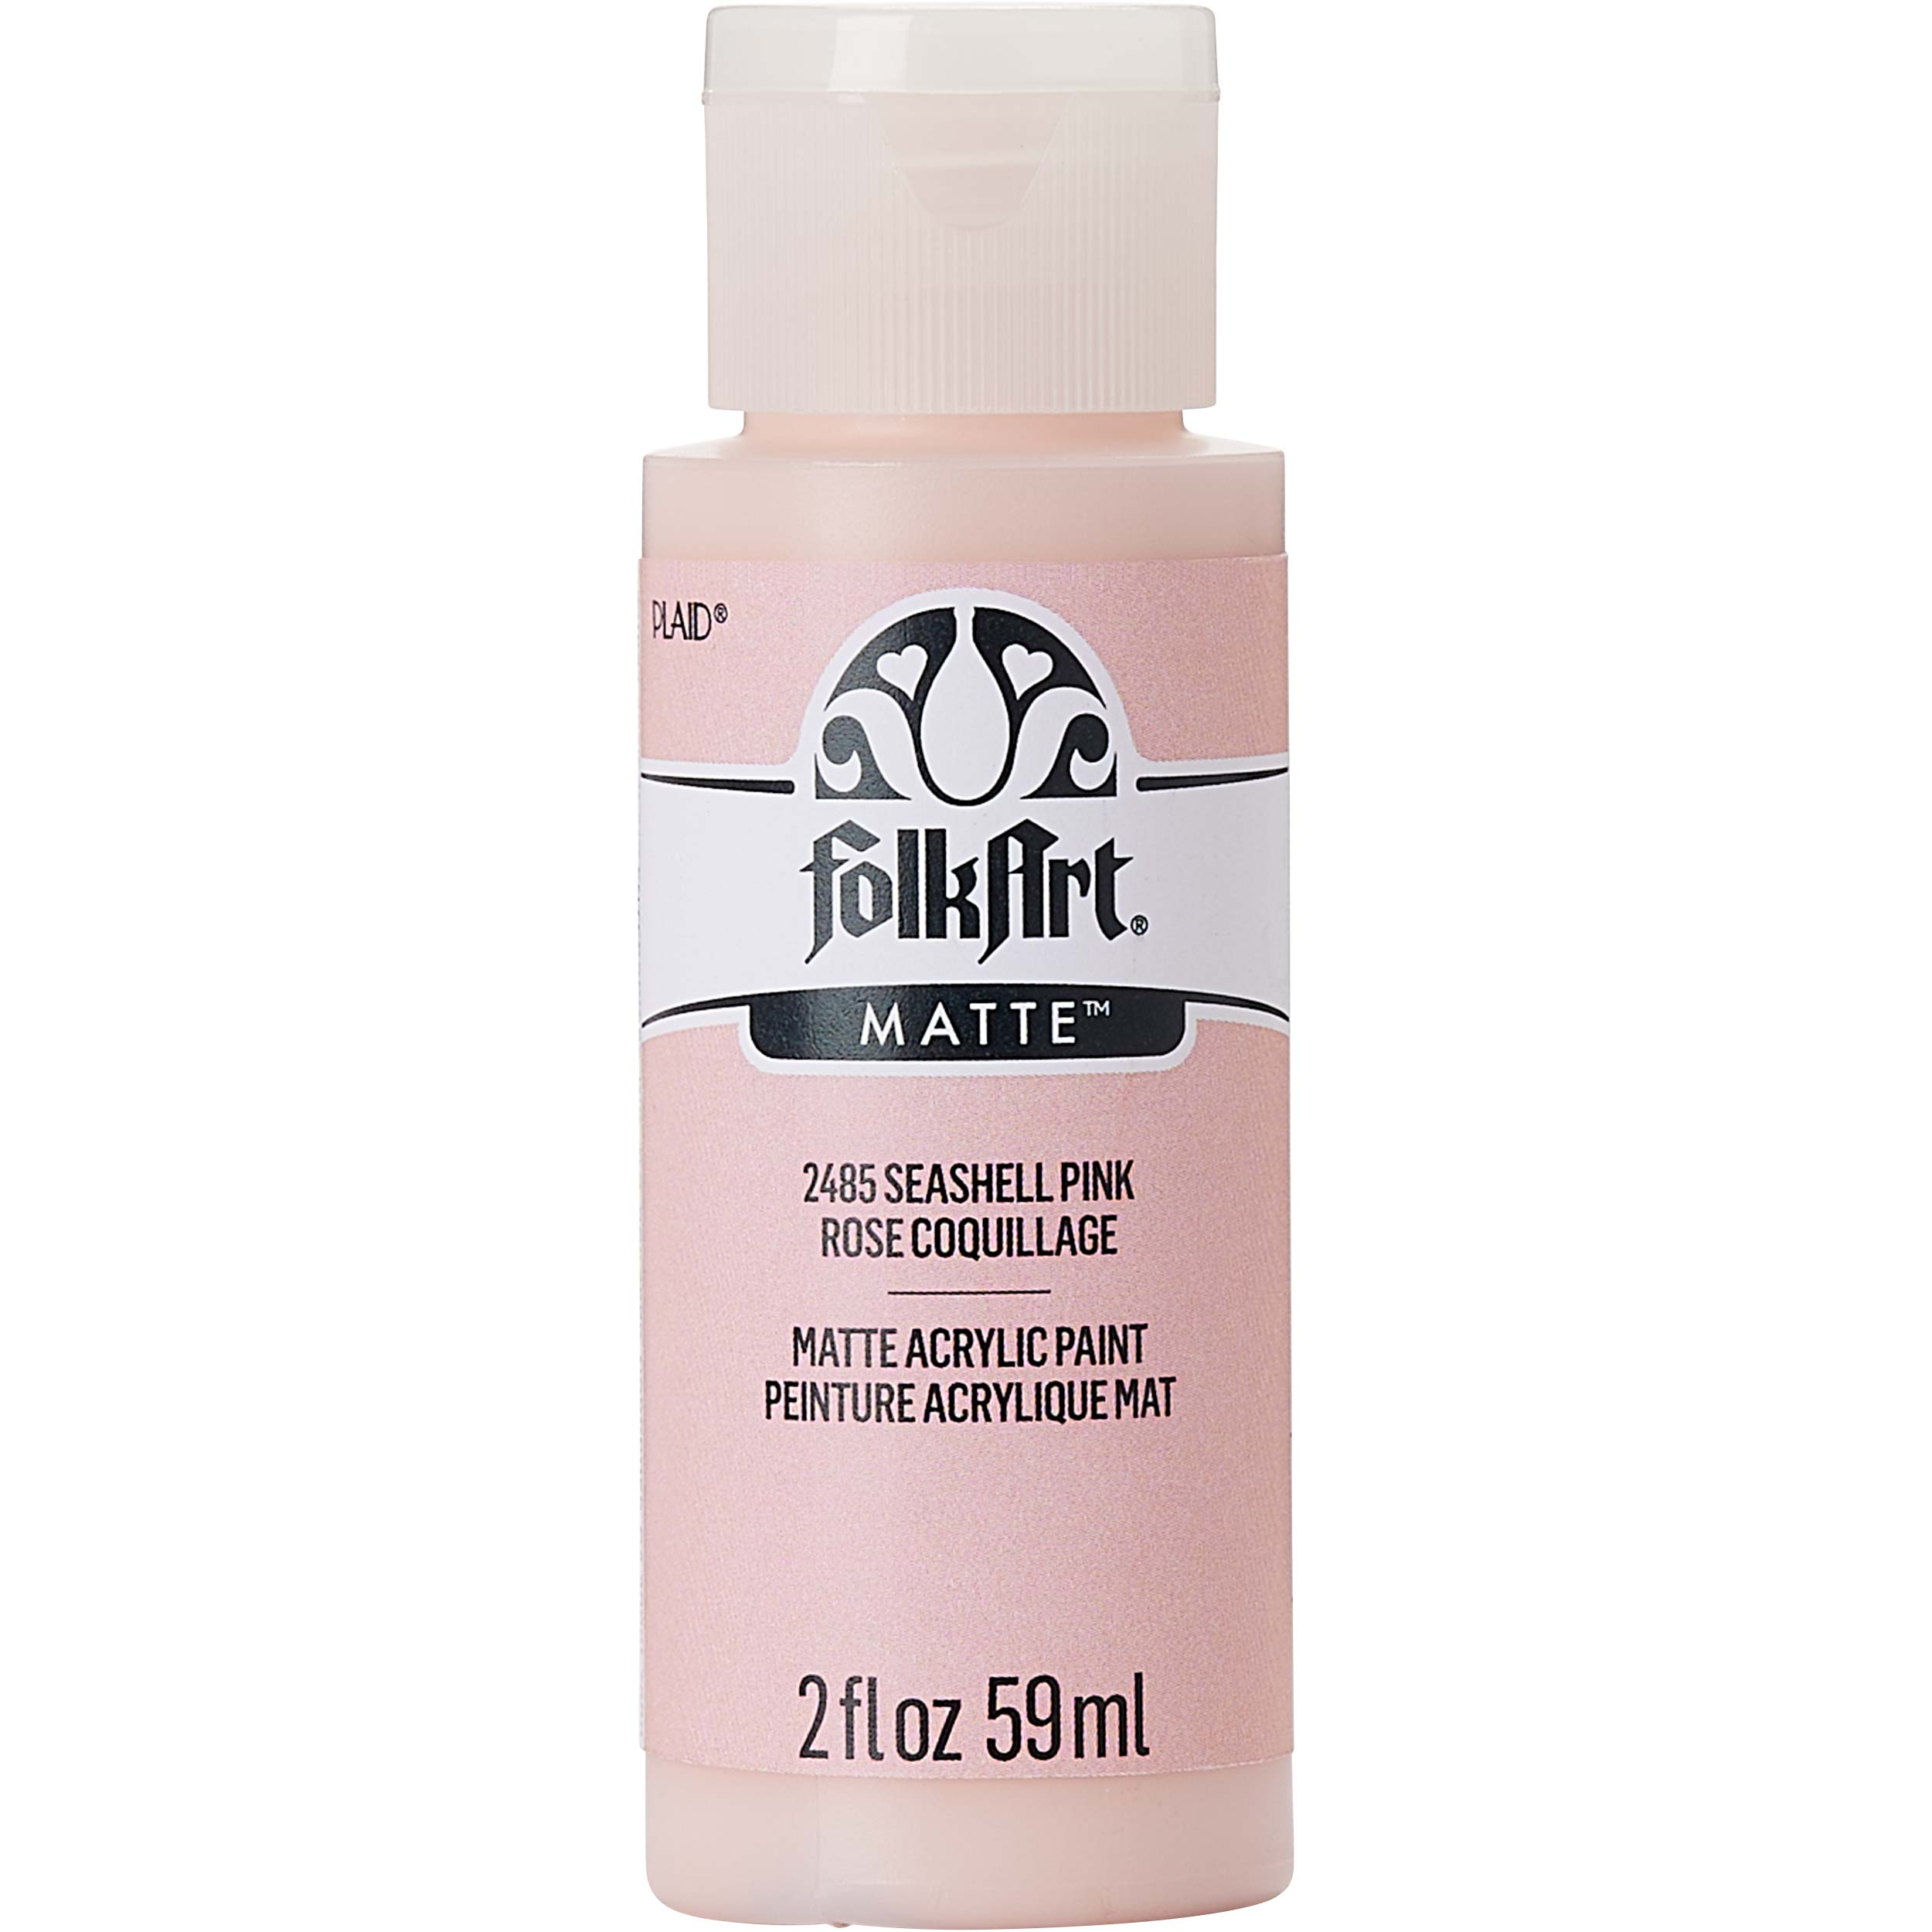 FolkArt ® Acrylic Colors - Seashell Pink, 2 oz. - 2485